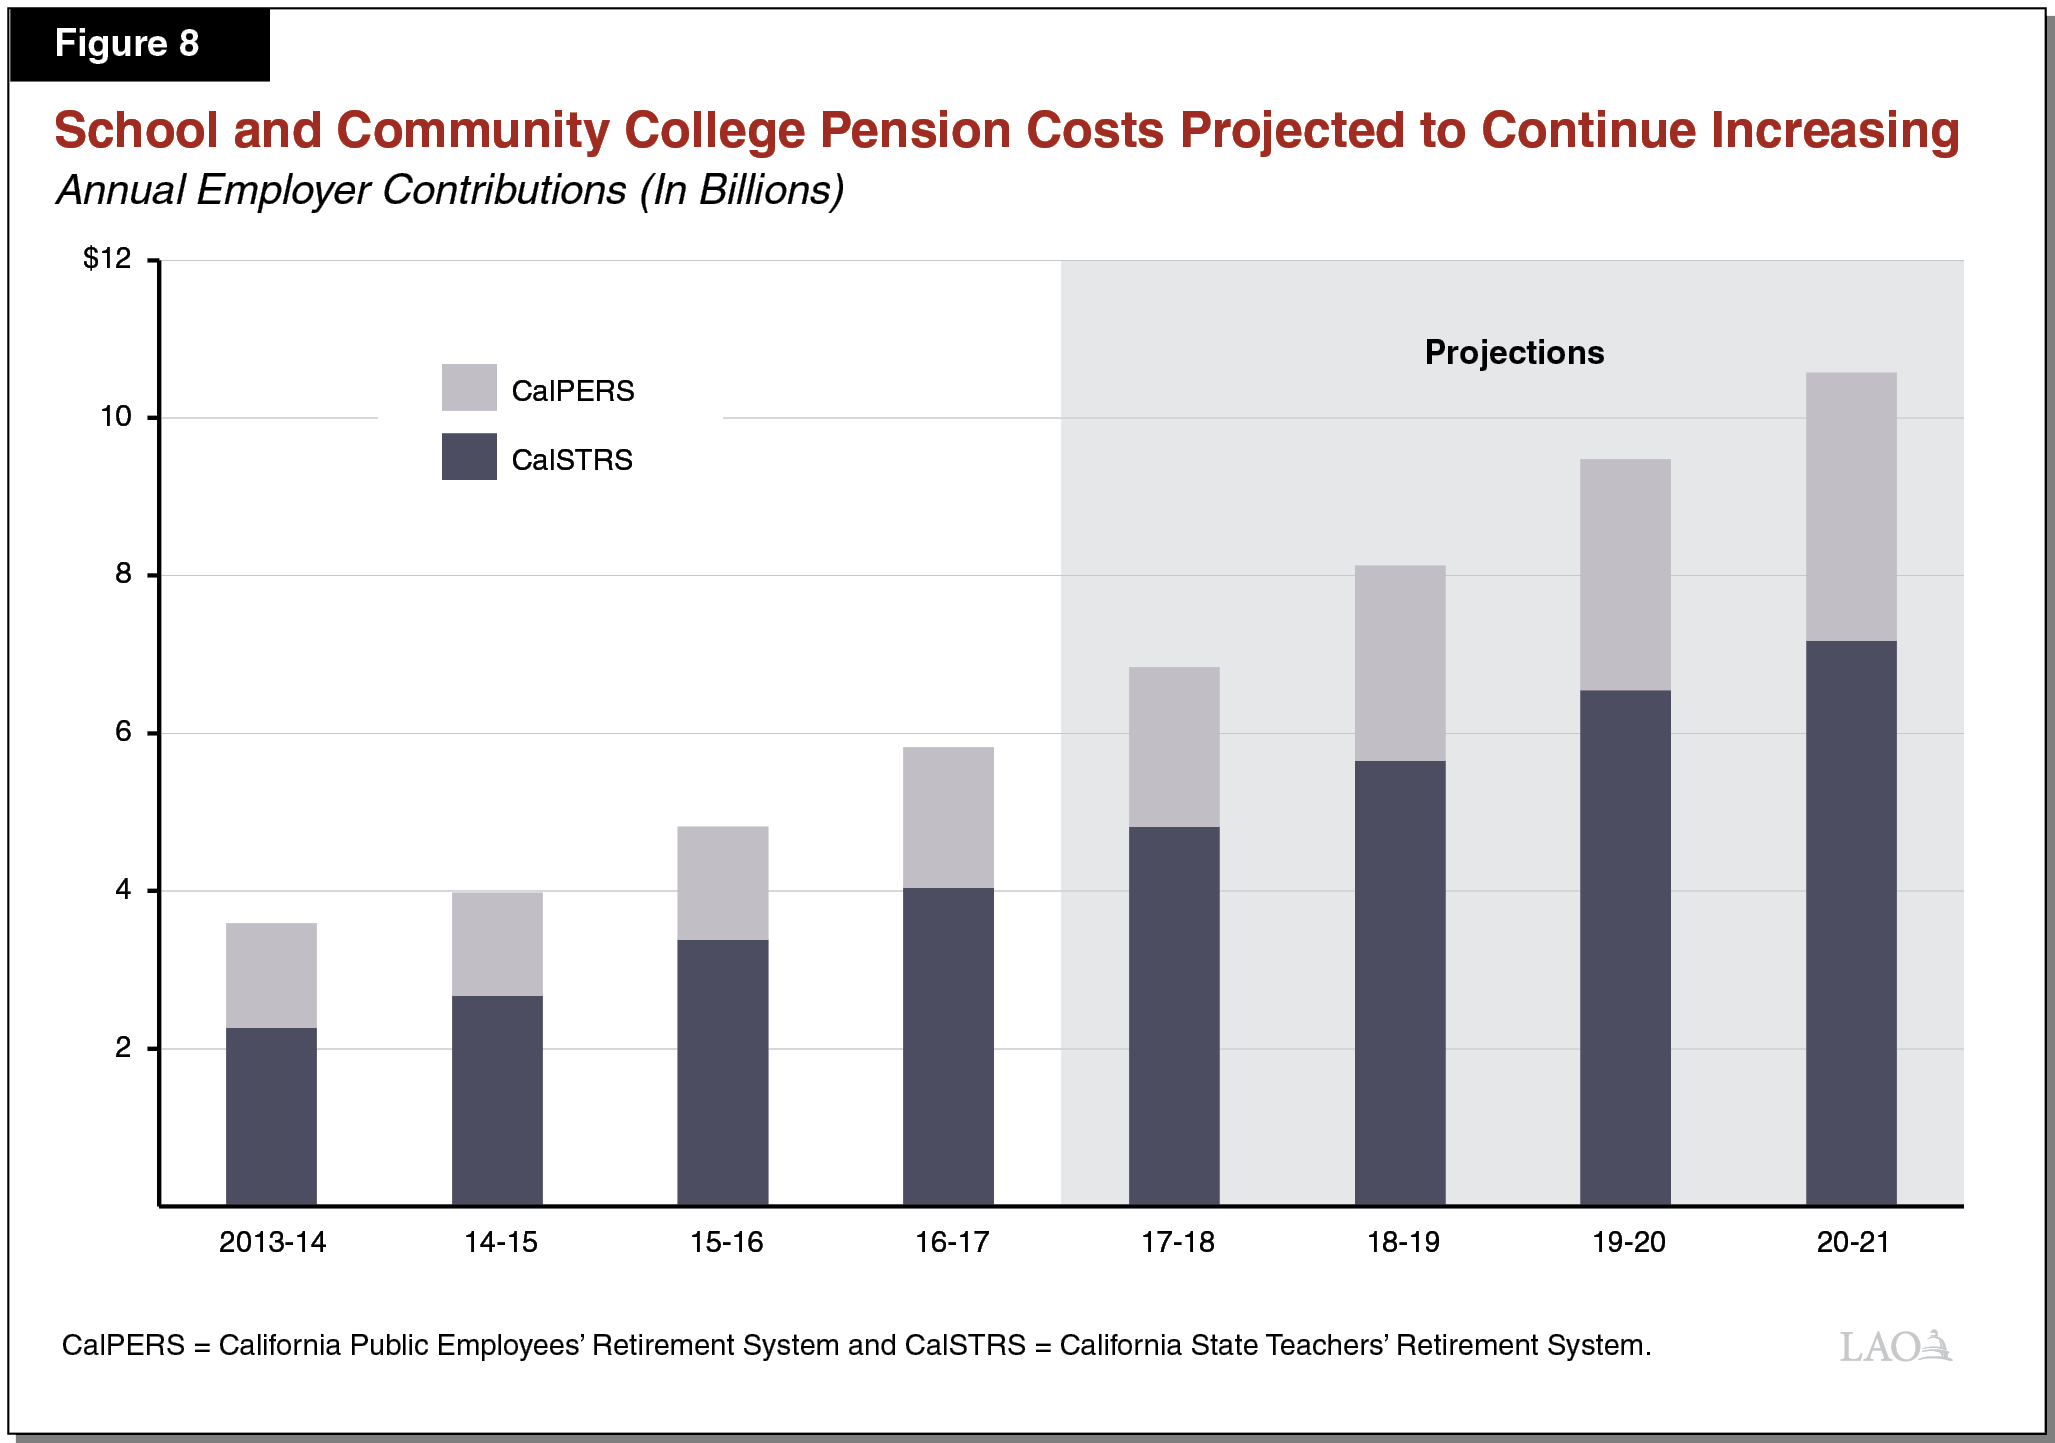 Figure 8 - School and Community College Pension Costs Rising Over the Period